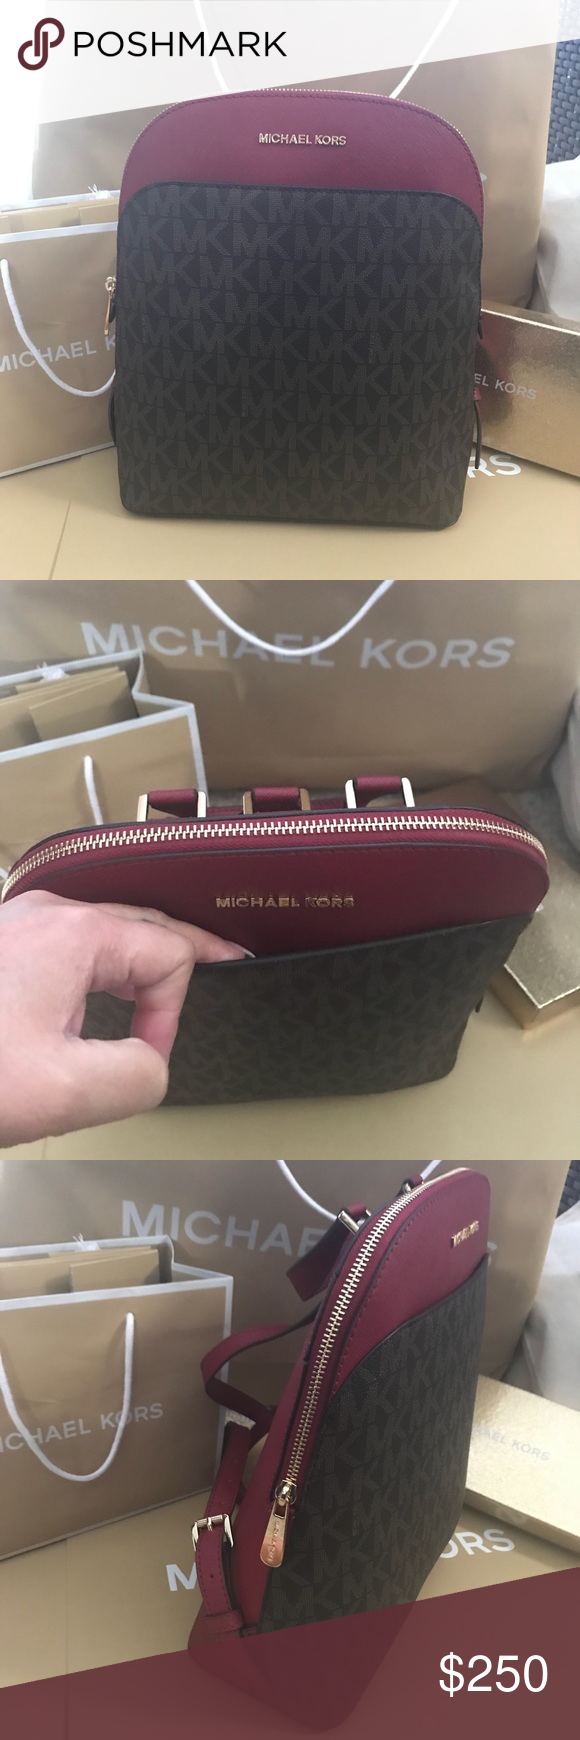 d91a7285c647 Michael Kors Emmy Backpack Brand new with tags, Emmy Backpack in Brown  monogram with Cherry and Gold emblem. Beautiful medium size backpack.